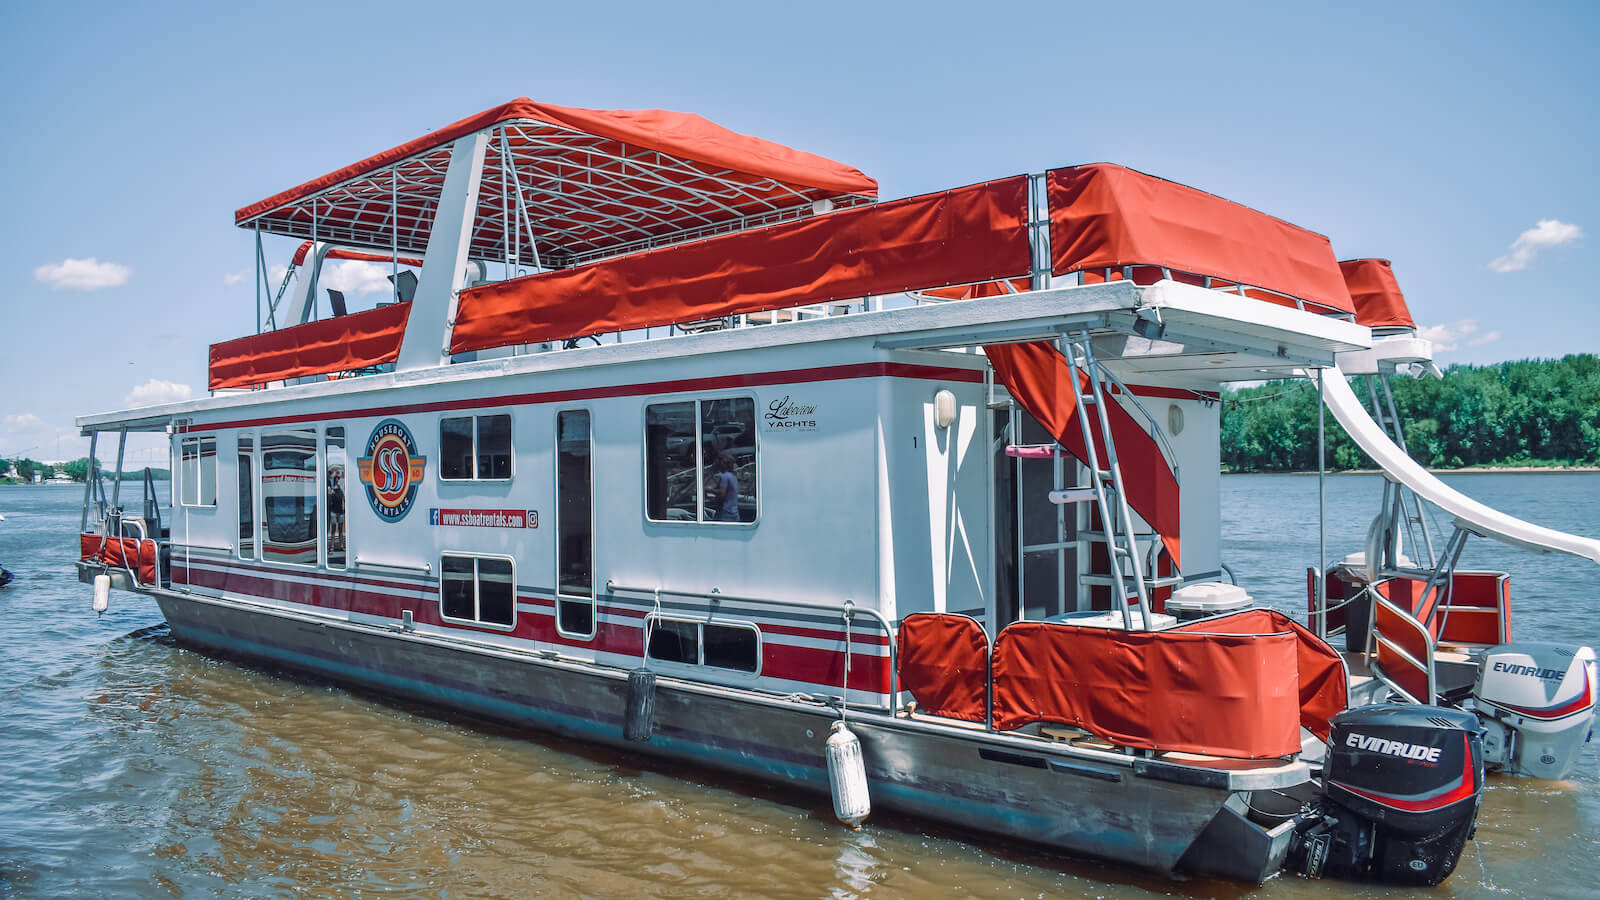 S&S Rentals Riverview 62' houseboat in the Mississippi River near Lansing, Iowa